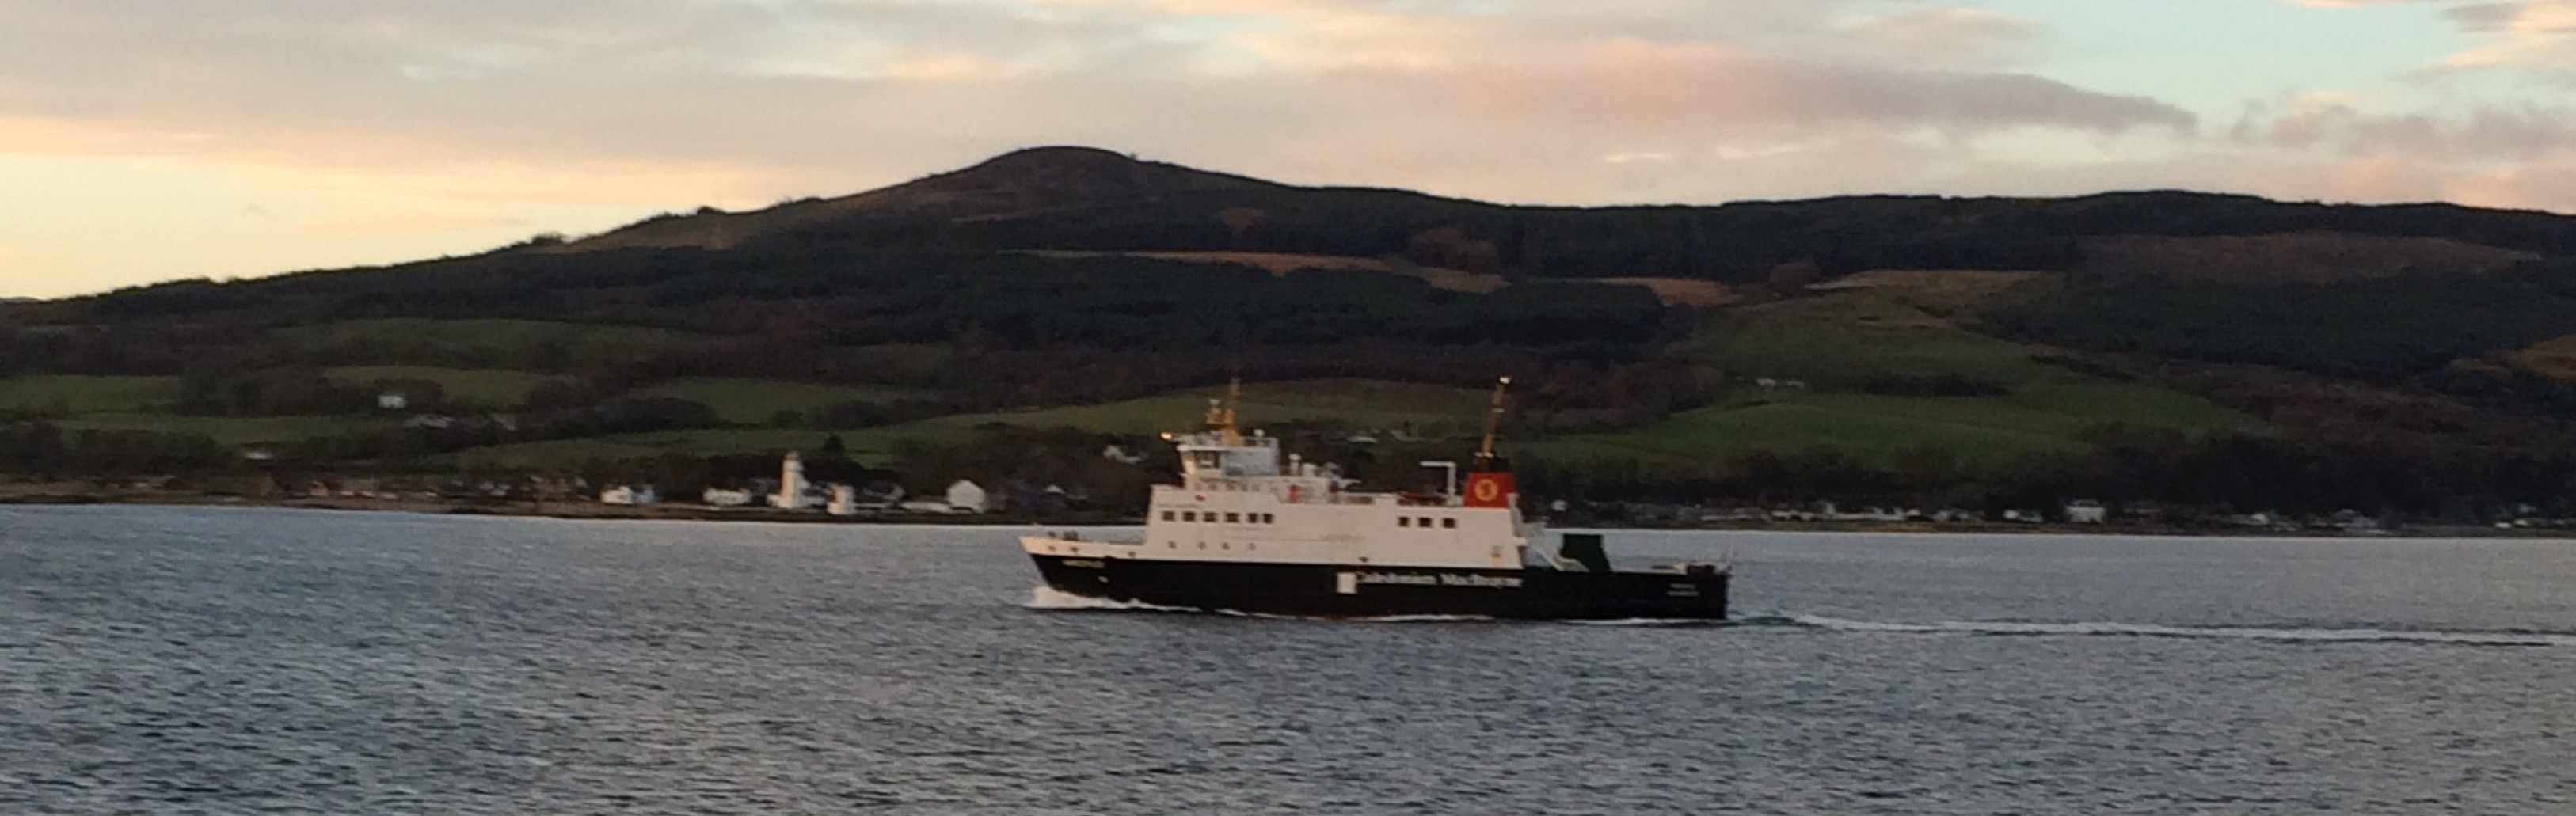 Rothesay Ferry passing Toward Lighthouse